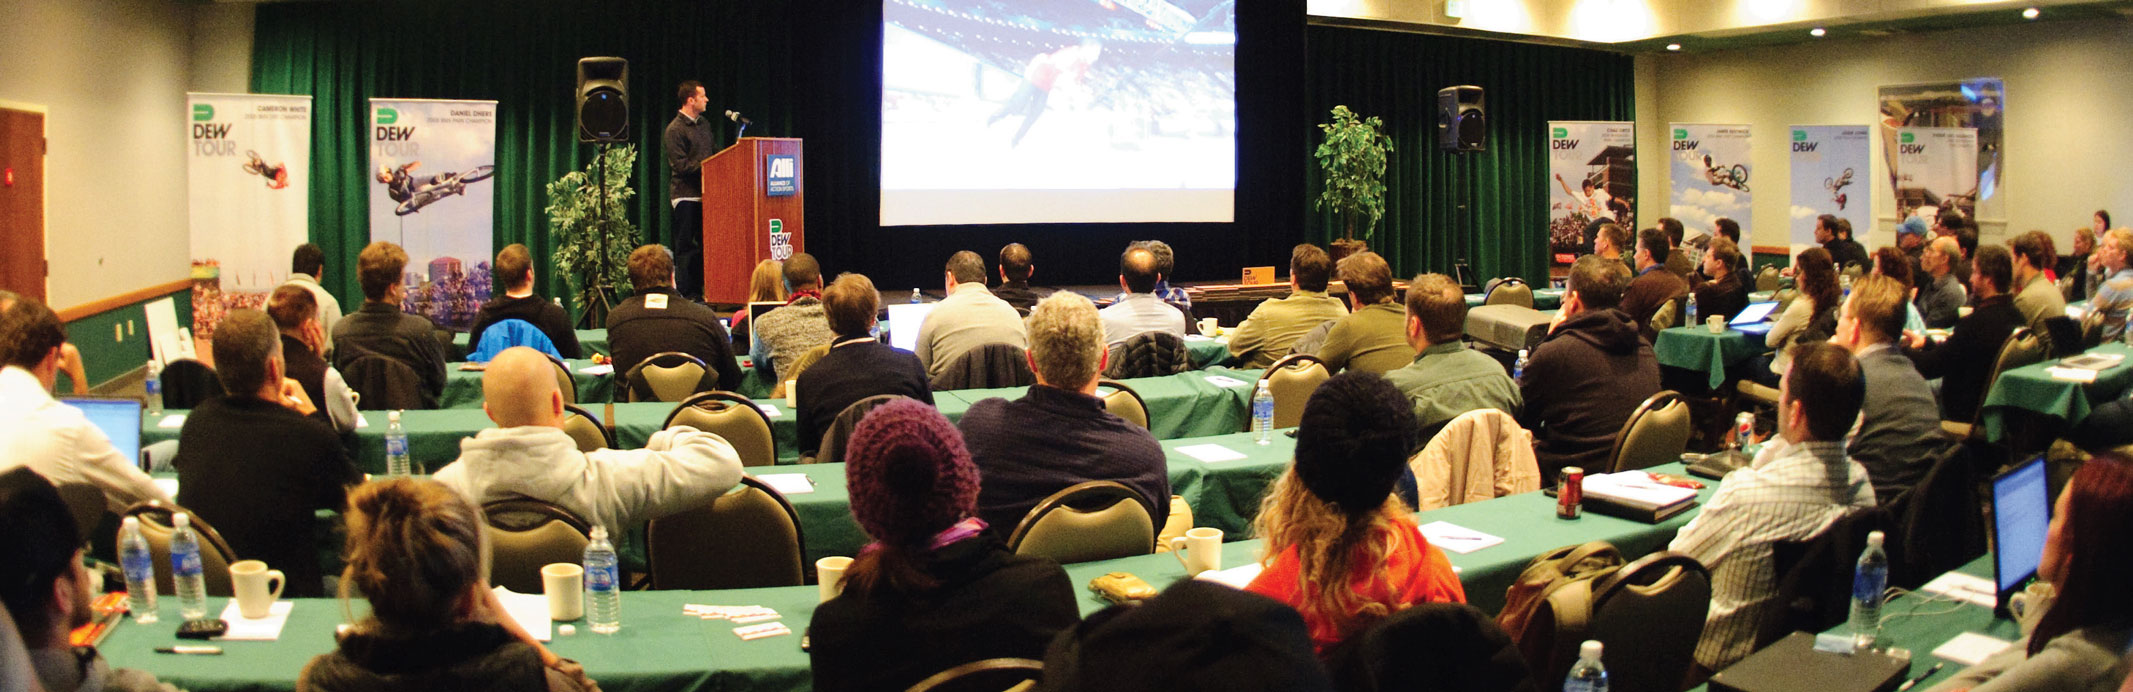 Conference at North Tahoe Event Center